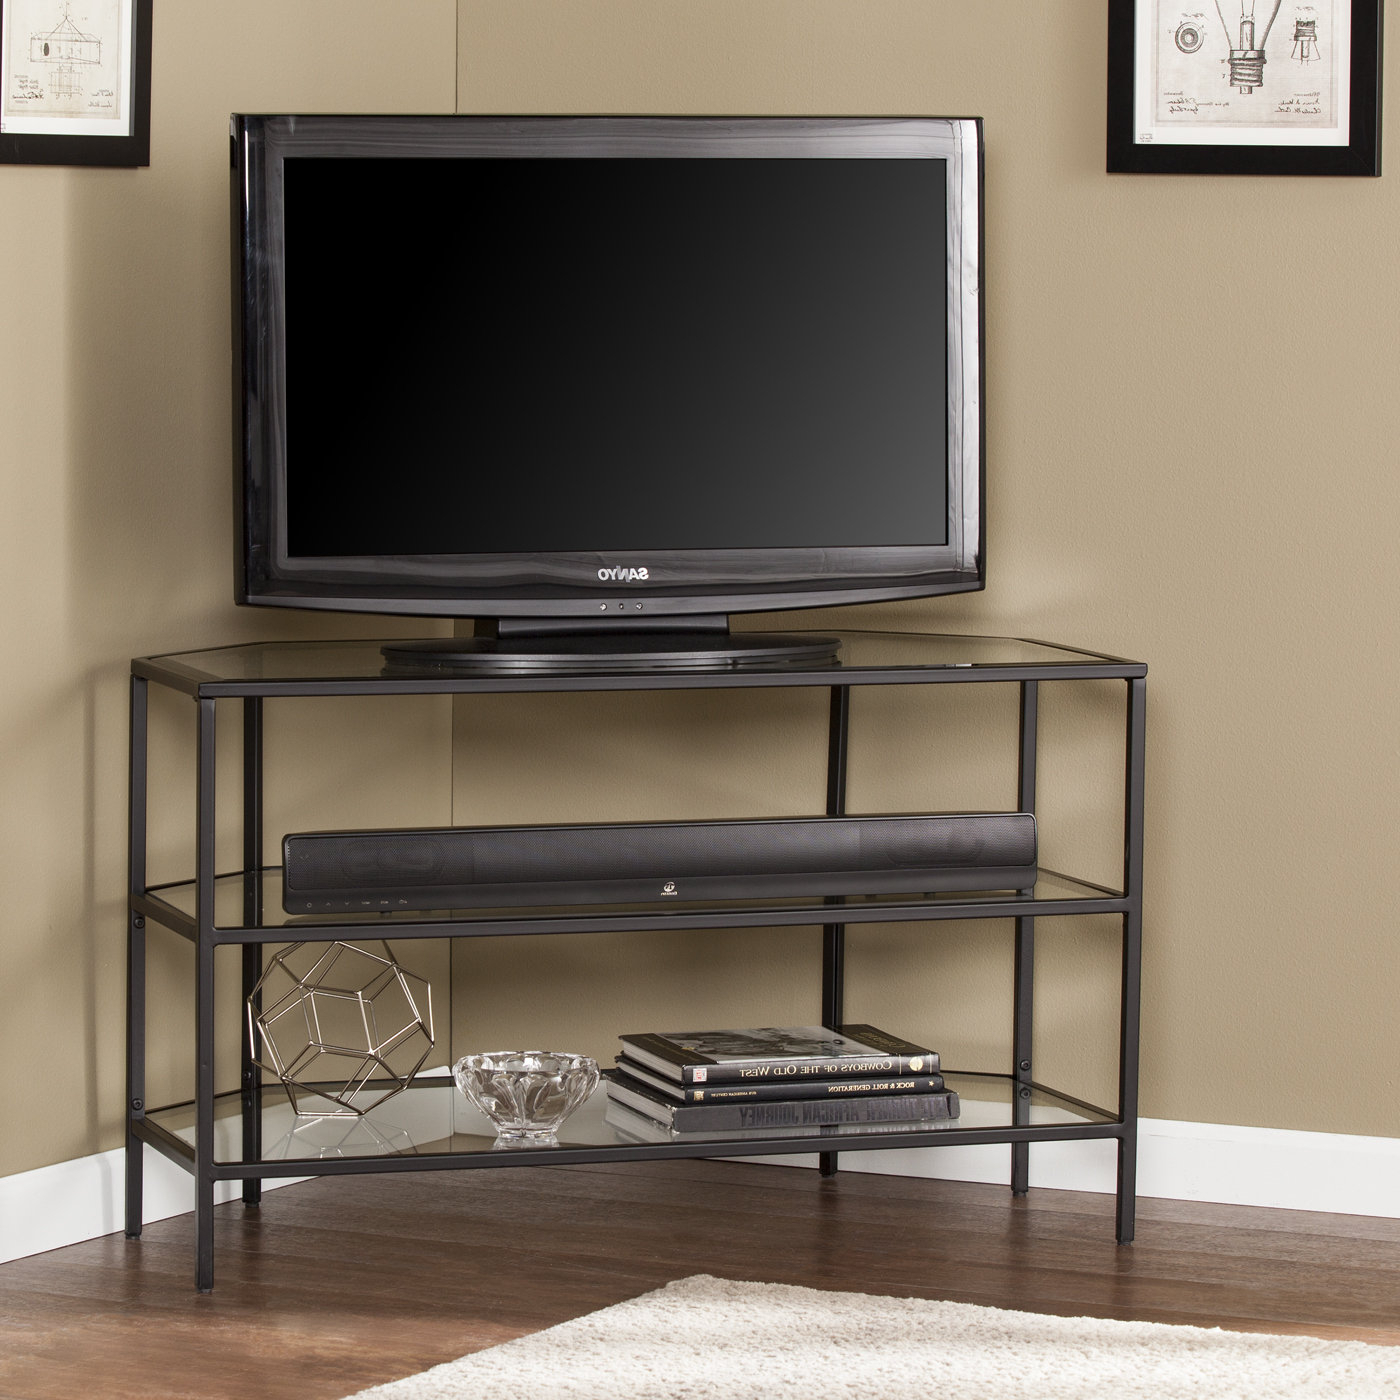 Birch Lane Pertaining To Casey Umber 54 Inch Tv Stands (View 7 of 20)